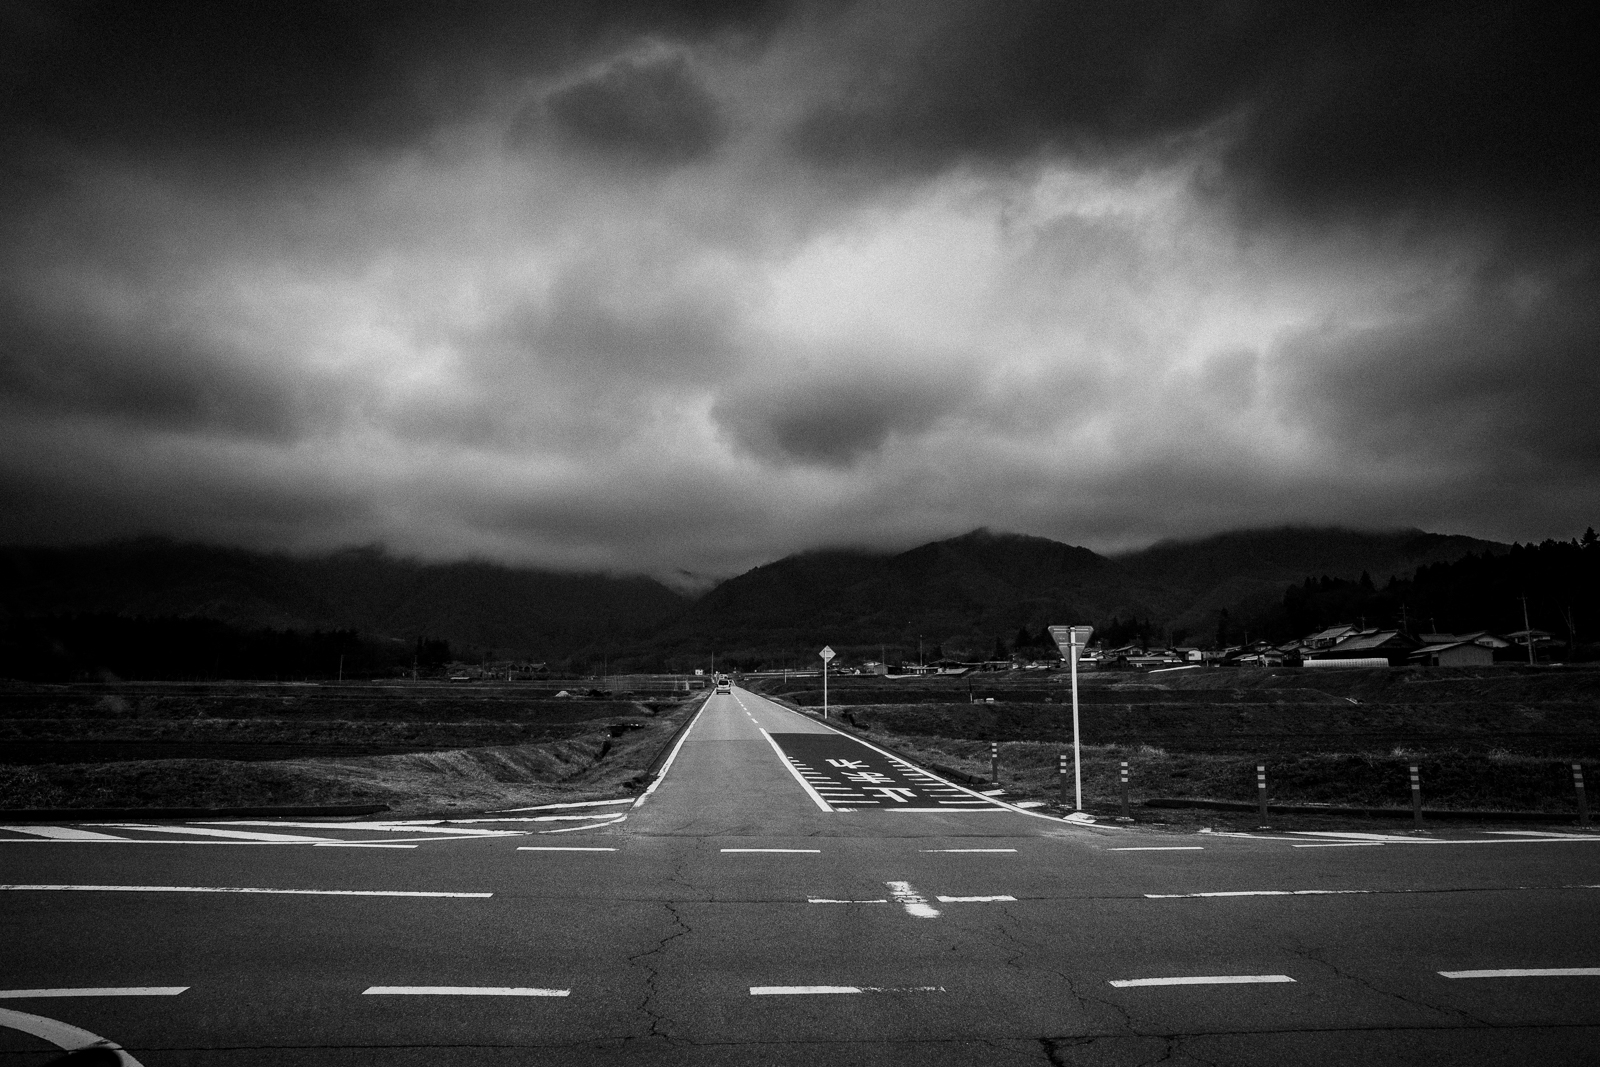 Dark clouds over a road in Yamanashi Prefecture, Japan. Photo by David R Munson